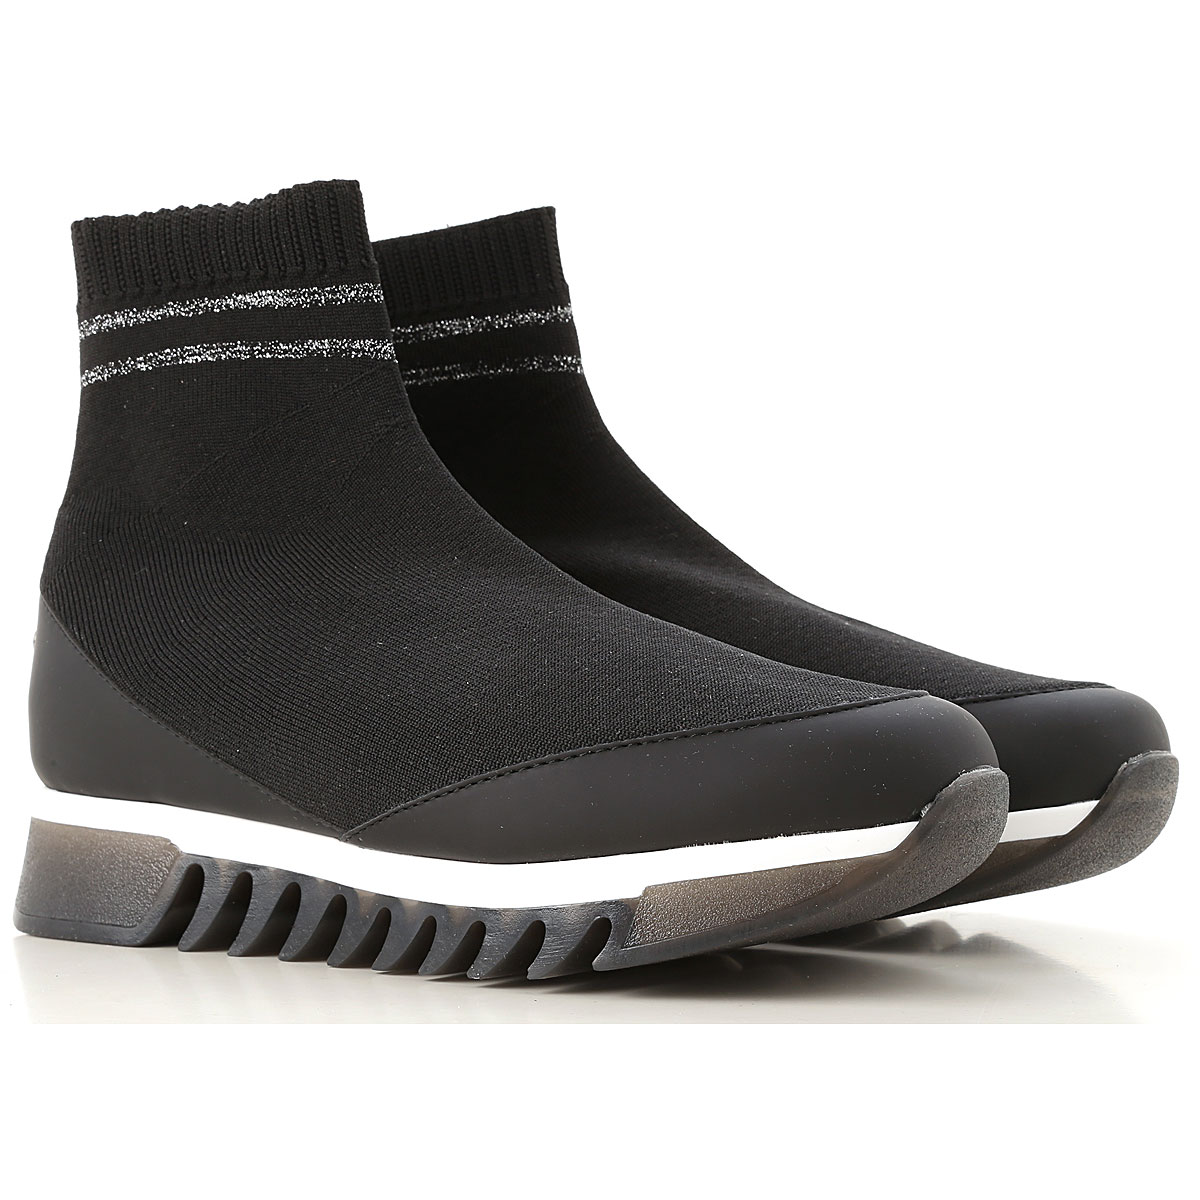 Image of Alexander Smith Boots for Women, Booties, Black, Fabric, 2017, 10 6 8